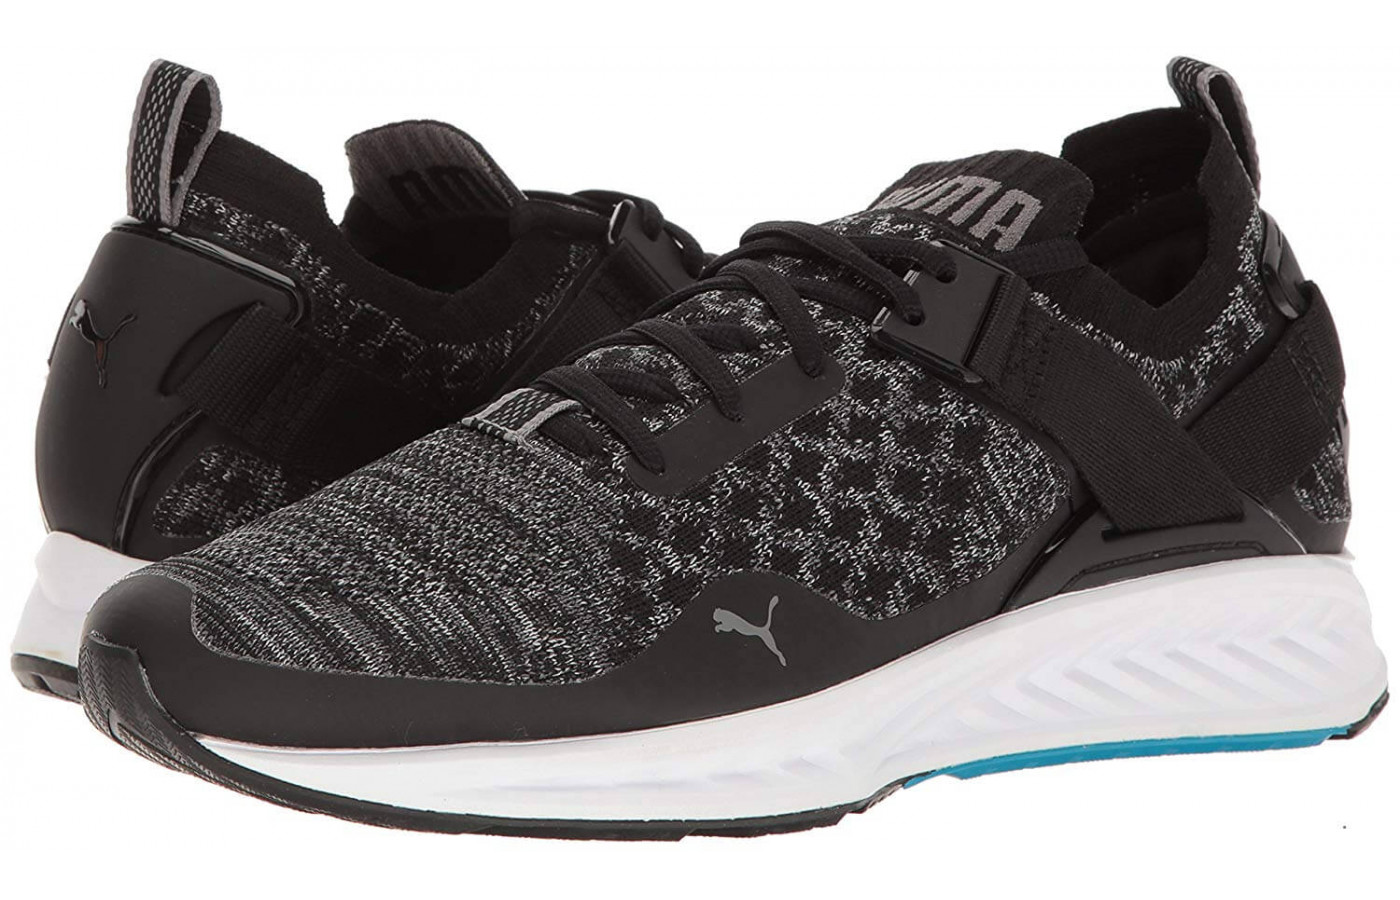 eaa98bbaf6f Puma Ignite Evoknit Lo Review - Buy or Not in May 2019